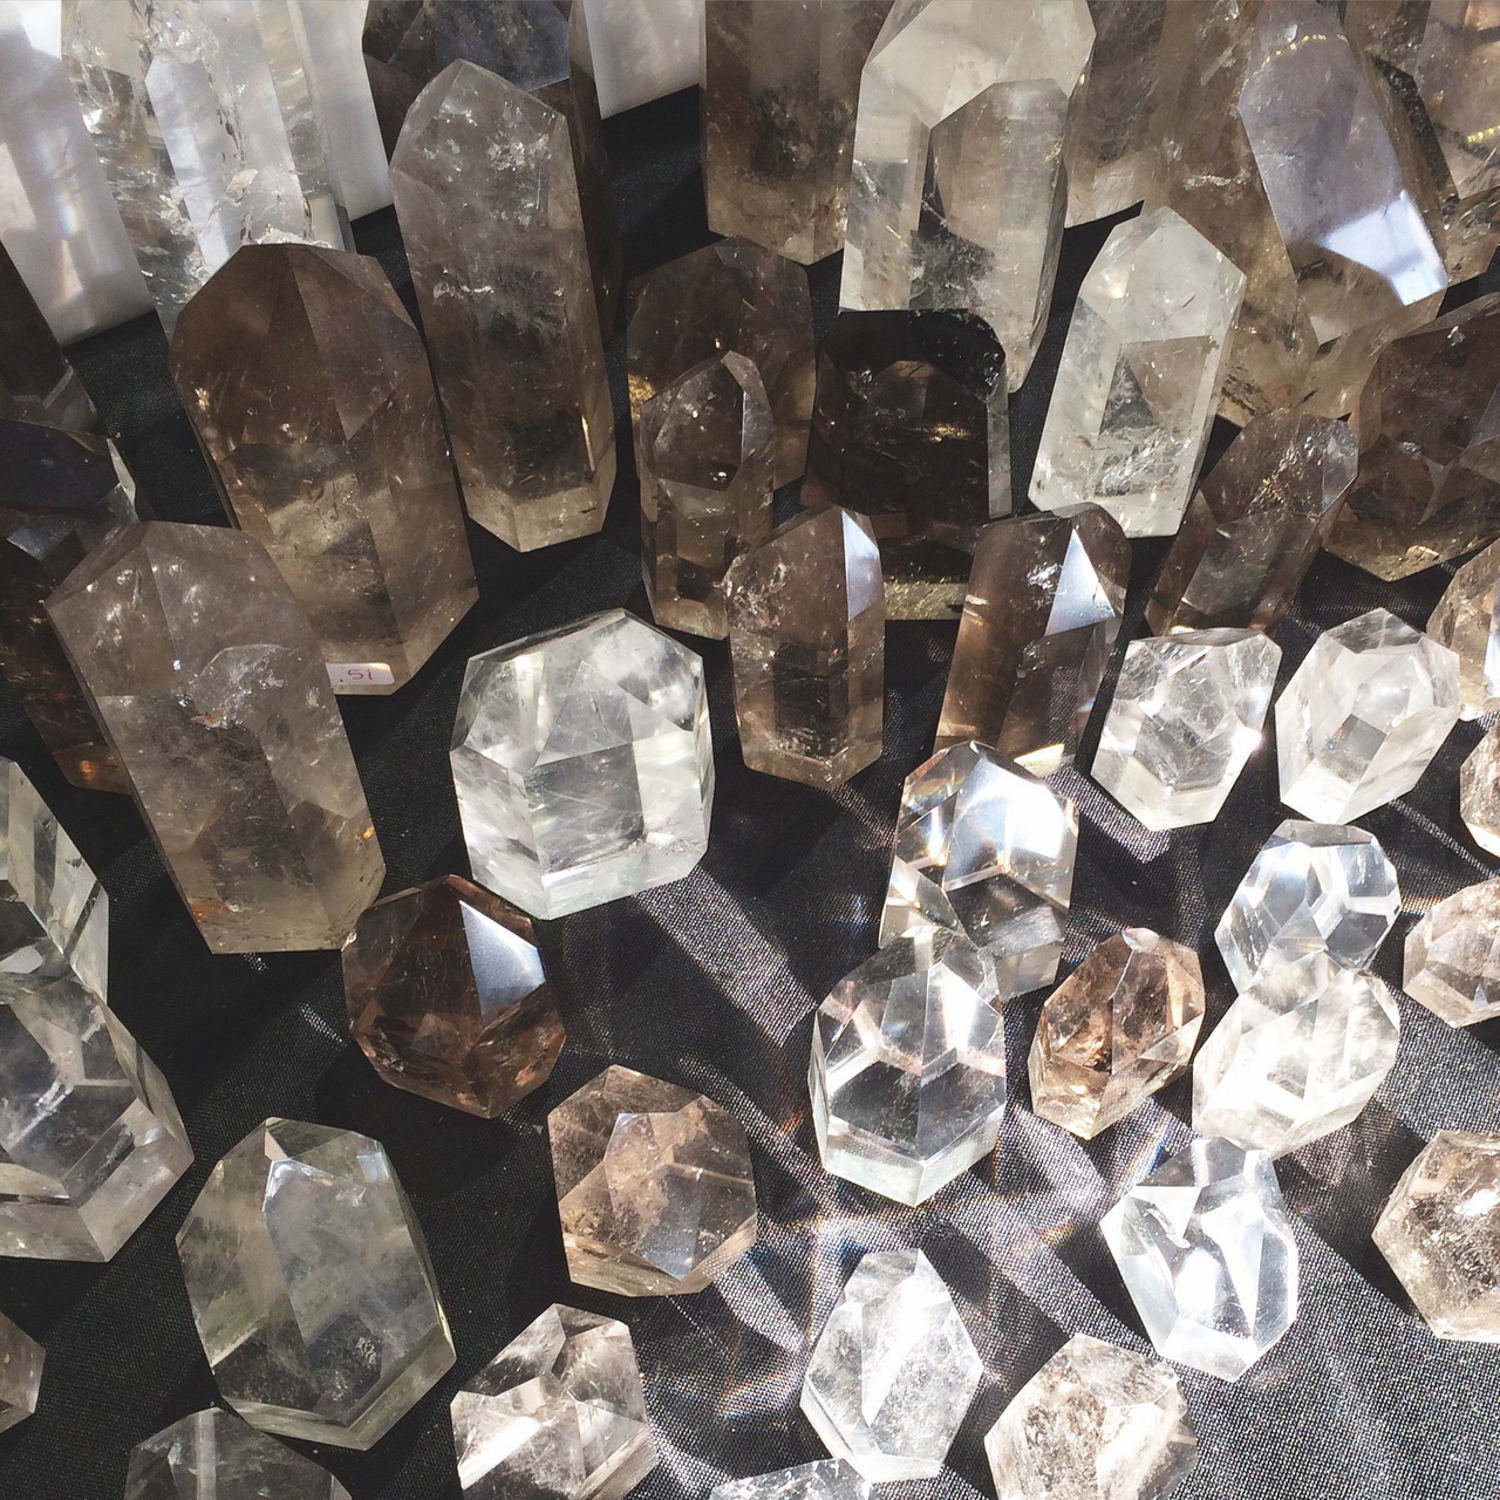 Crystals - Home Wish List - San Francisco Blogger